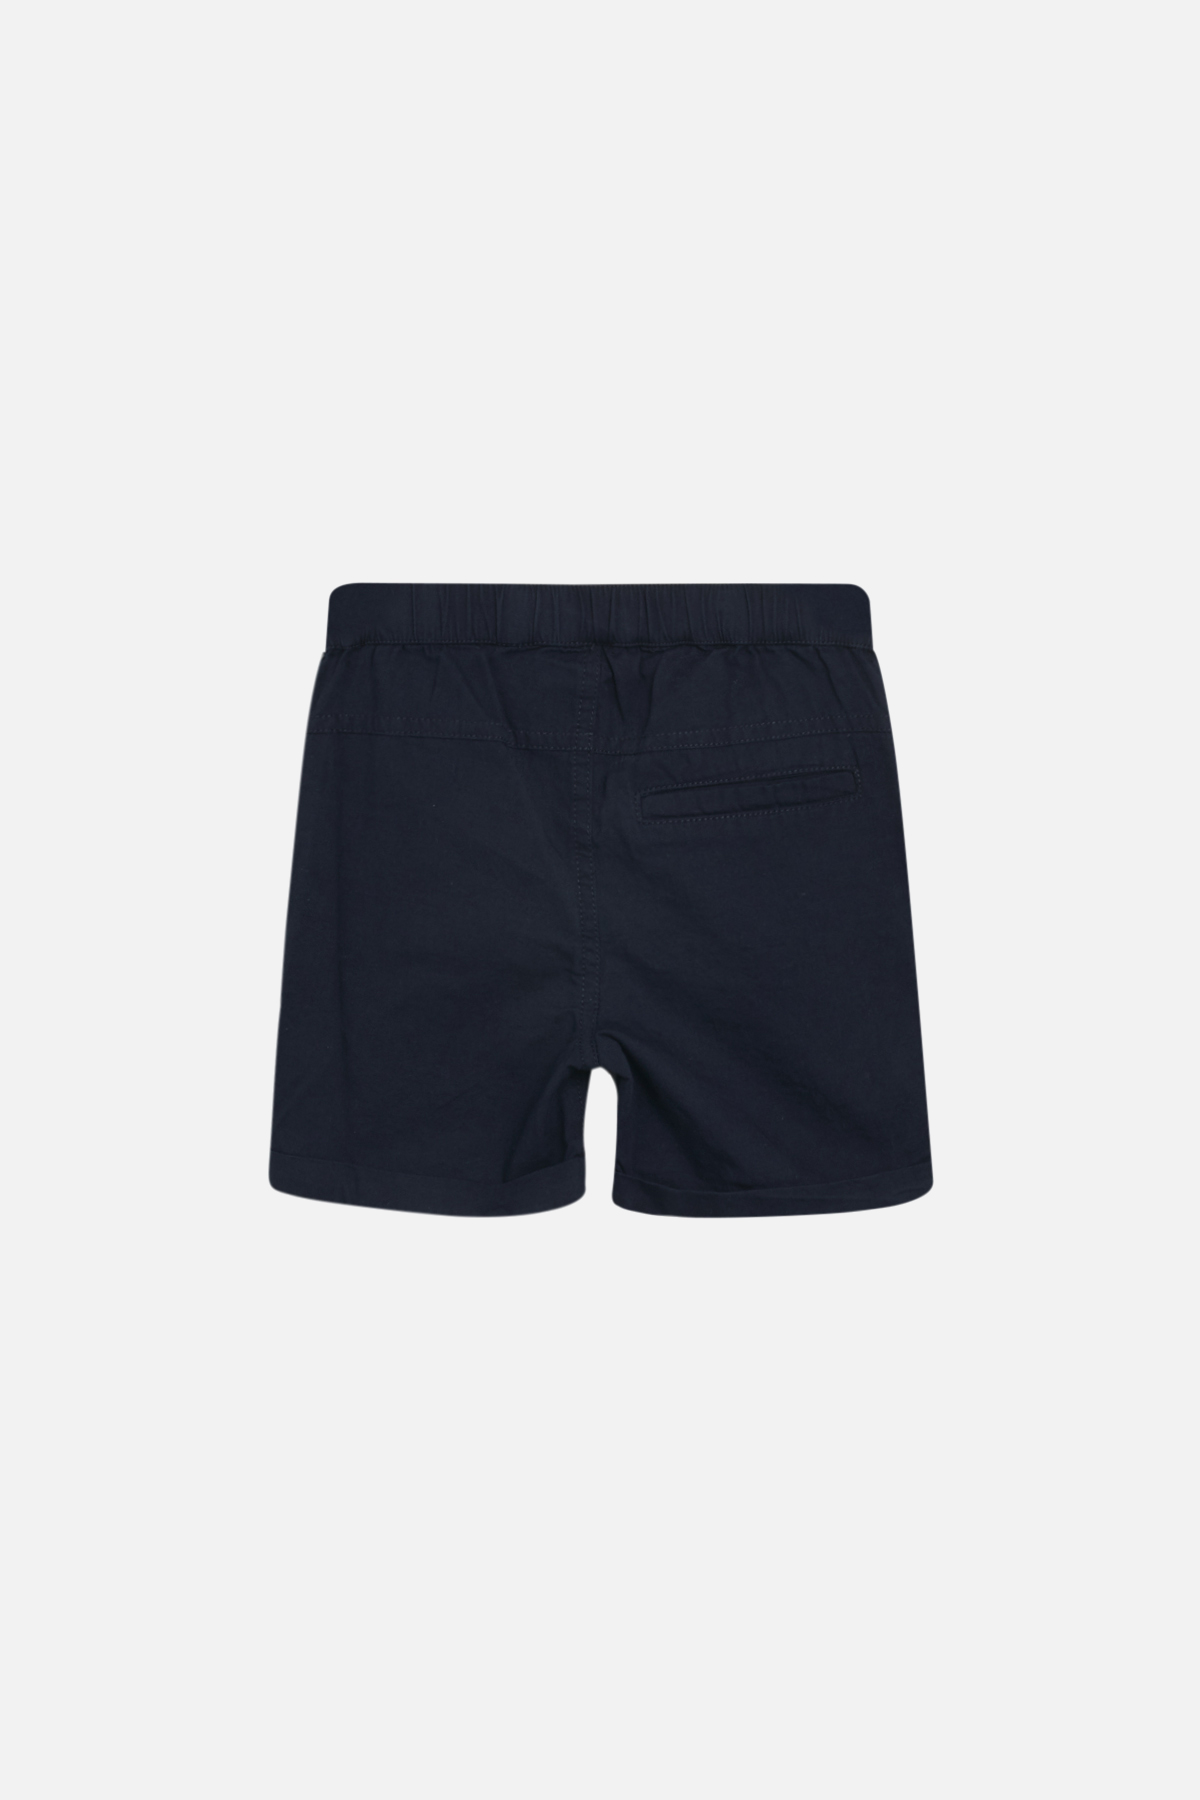 Hust and Claire Halfdan shorts, navy, 116